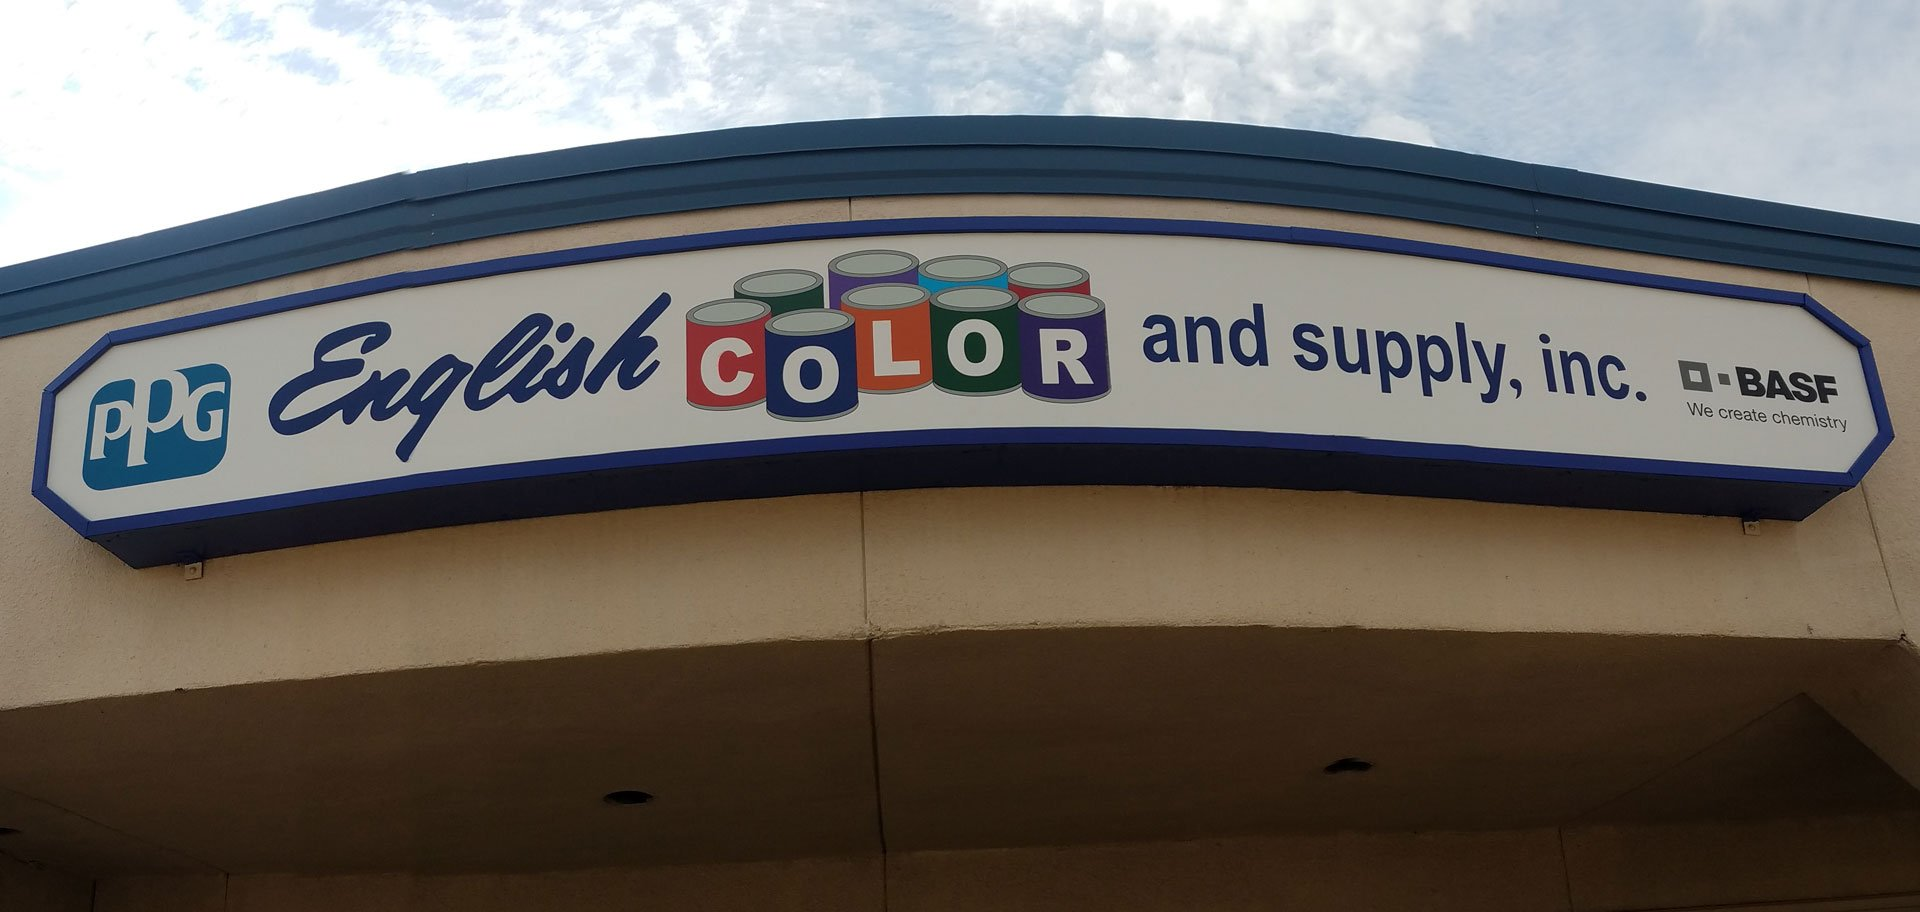 Eglish color and Supply Sign